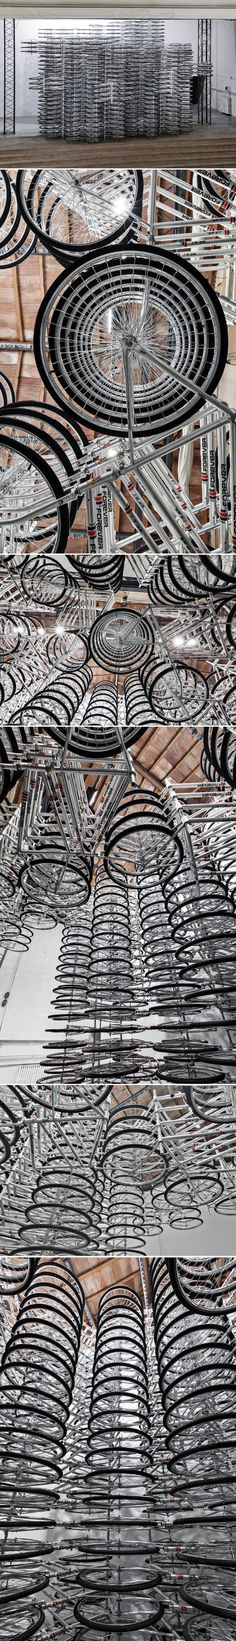 Installation Stacked Ai Weiwei